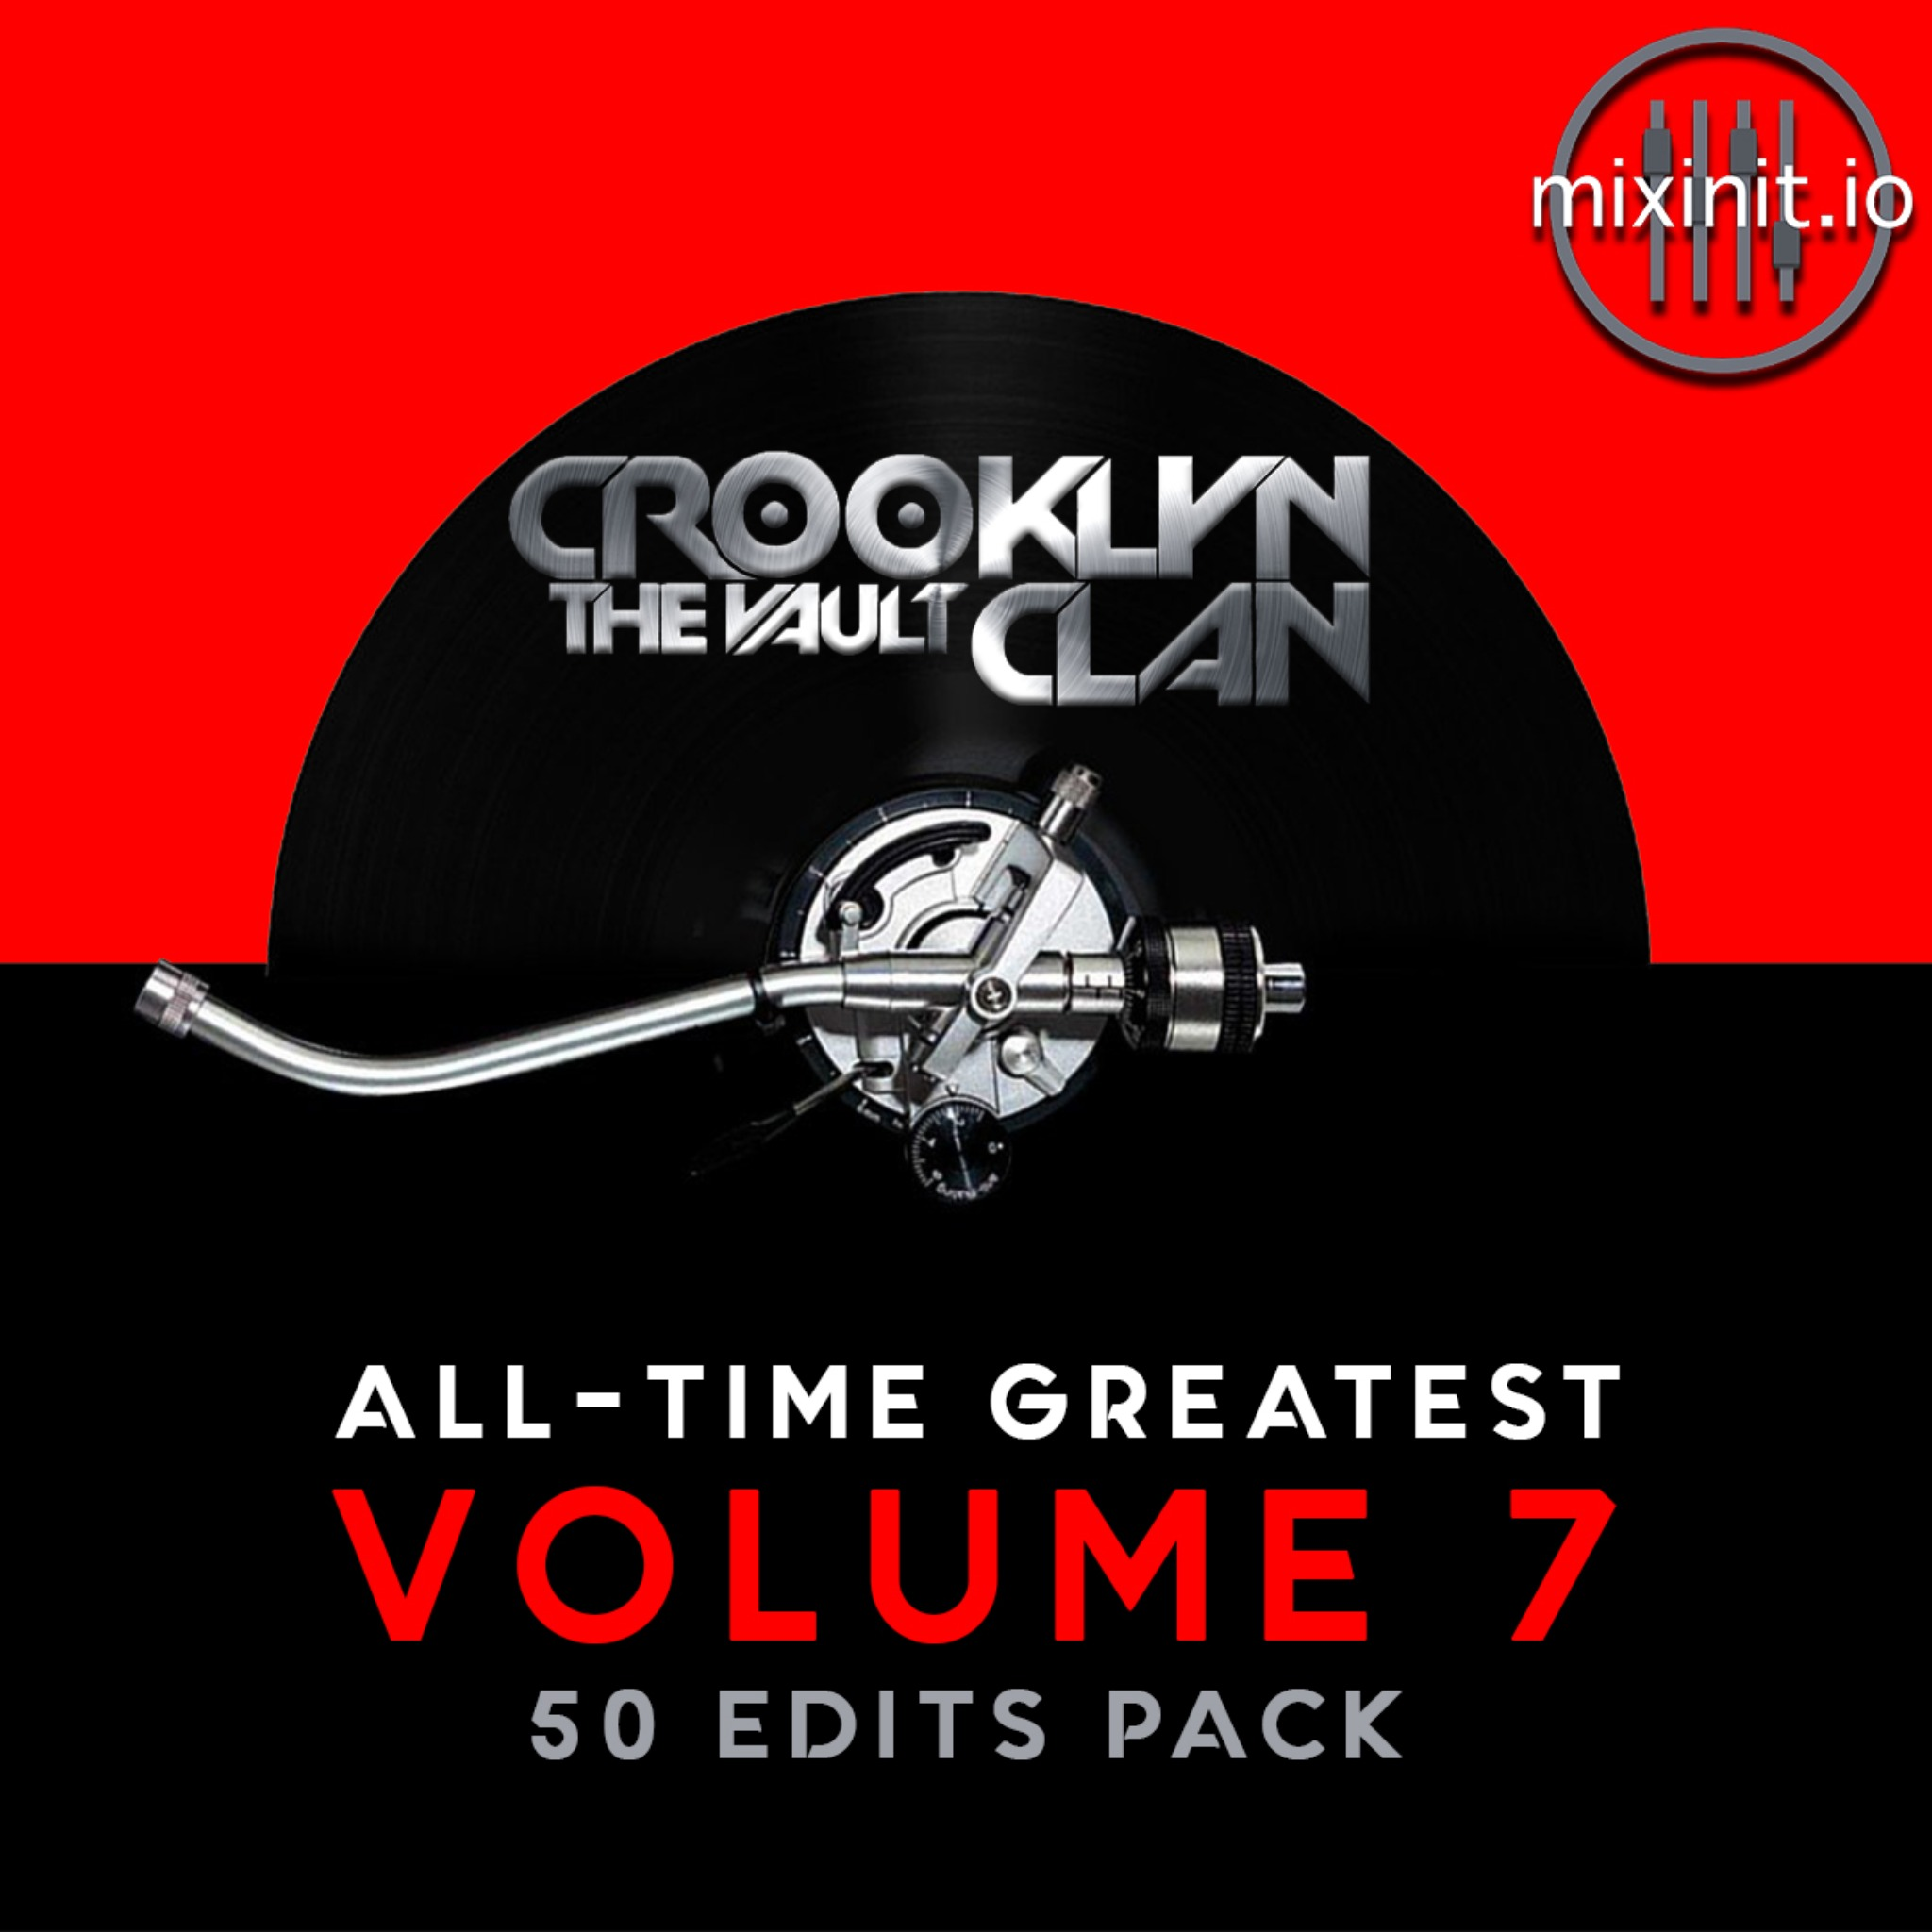 Best Of The Crooklyn Clan Vault Vol. 7 (Various Editors)